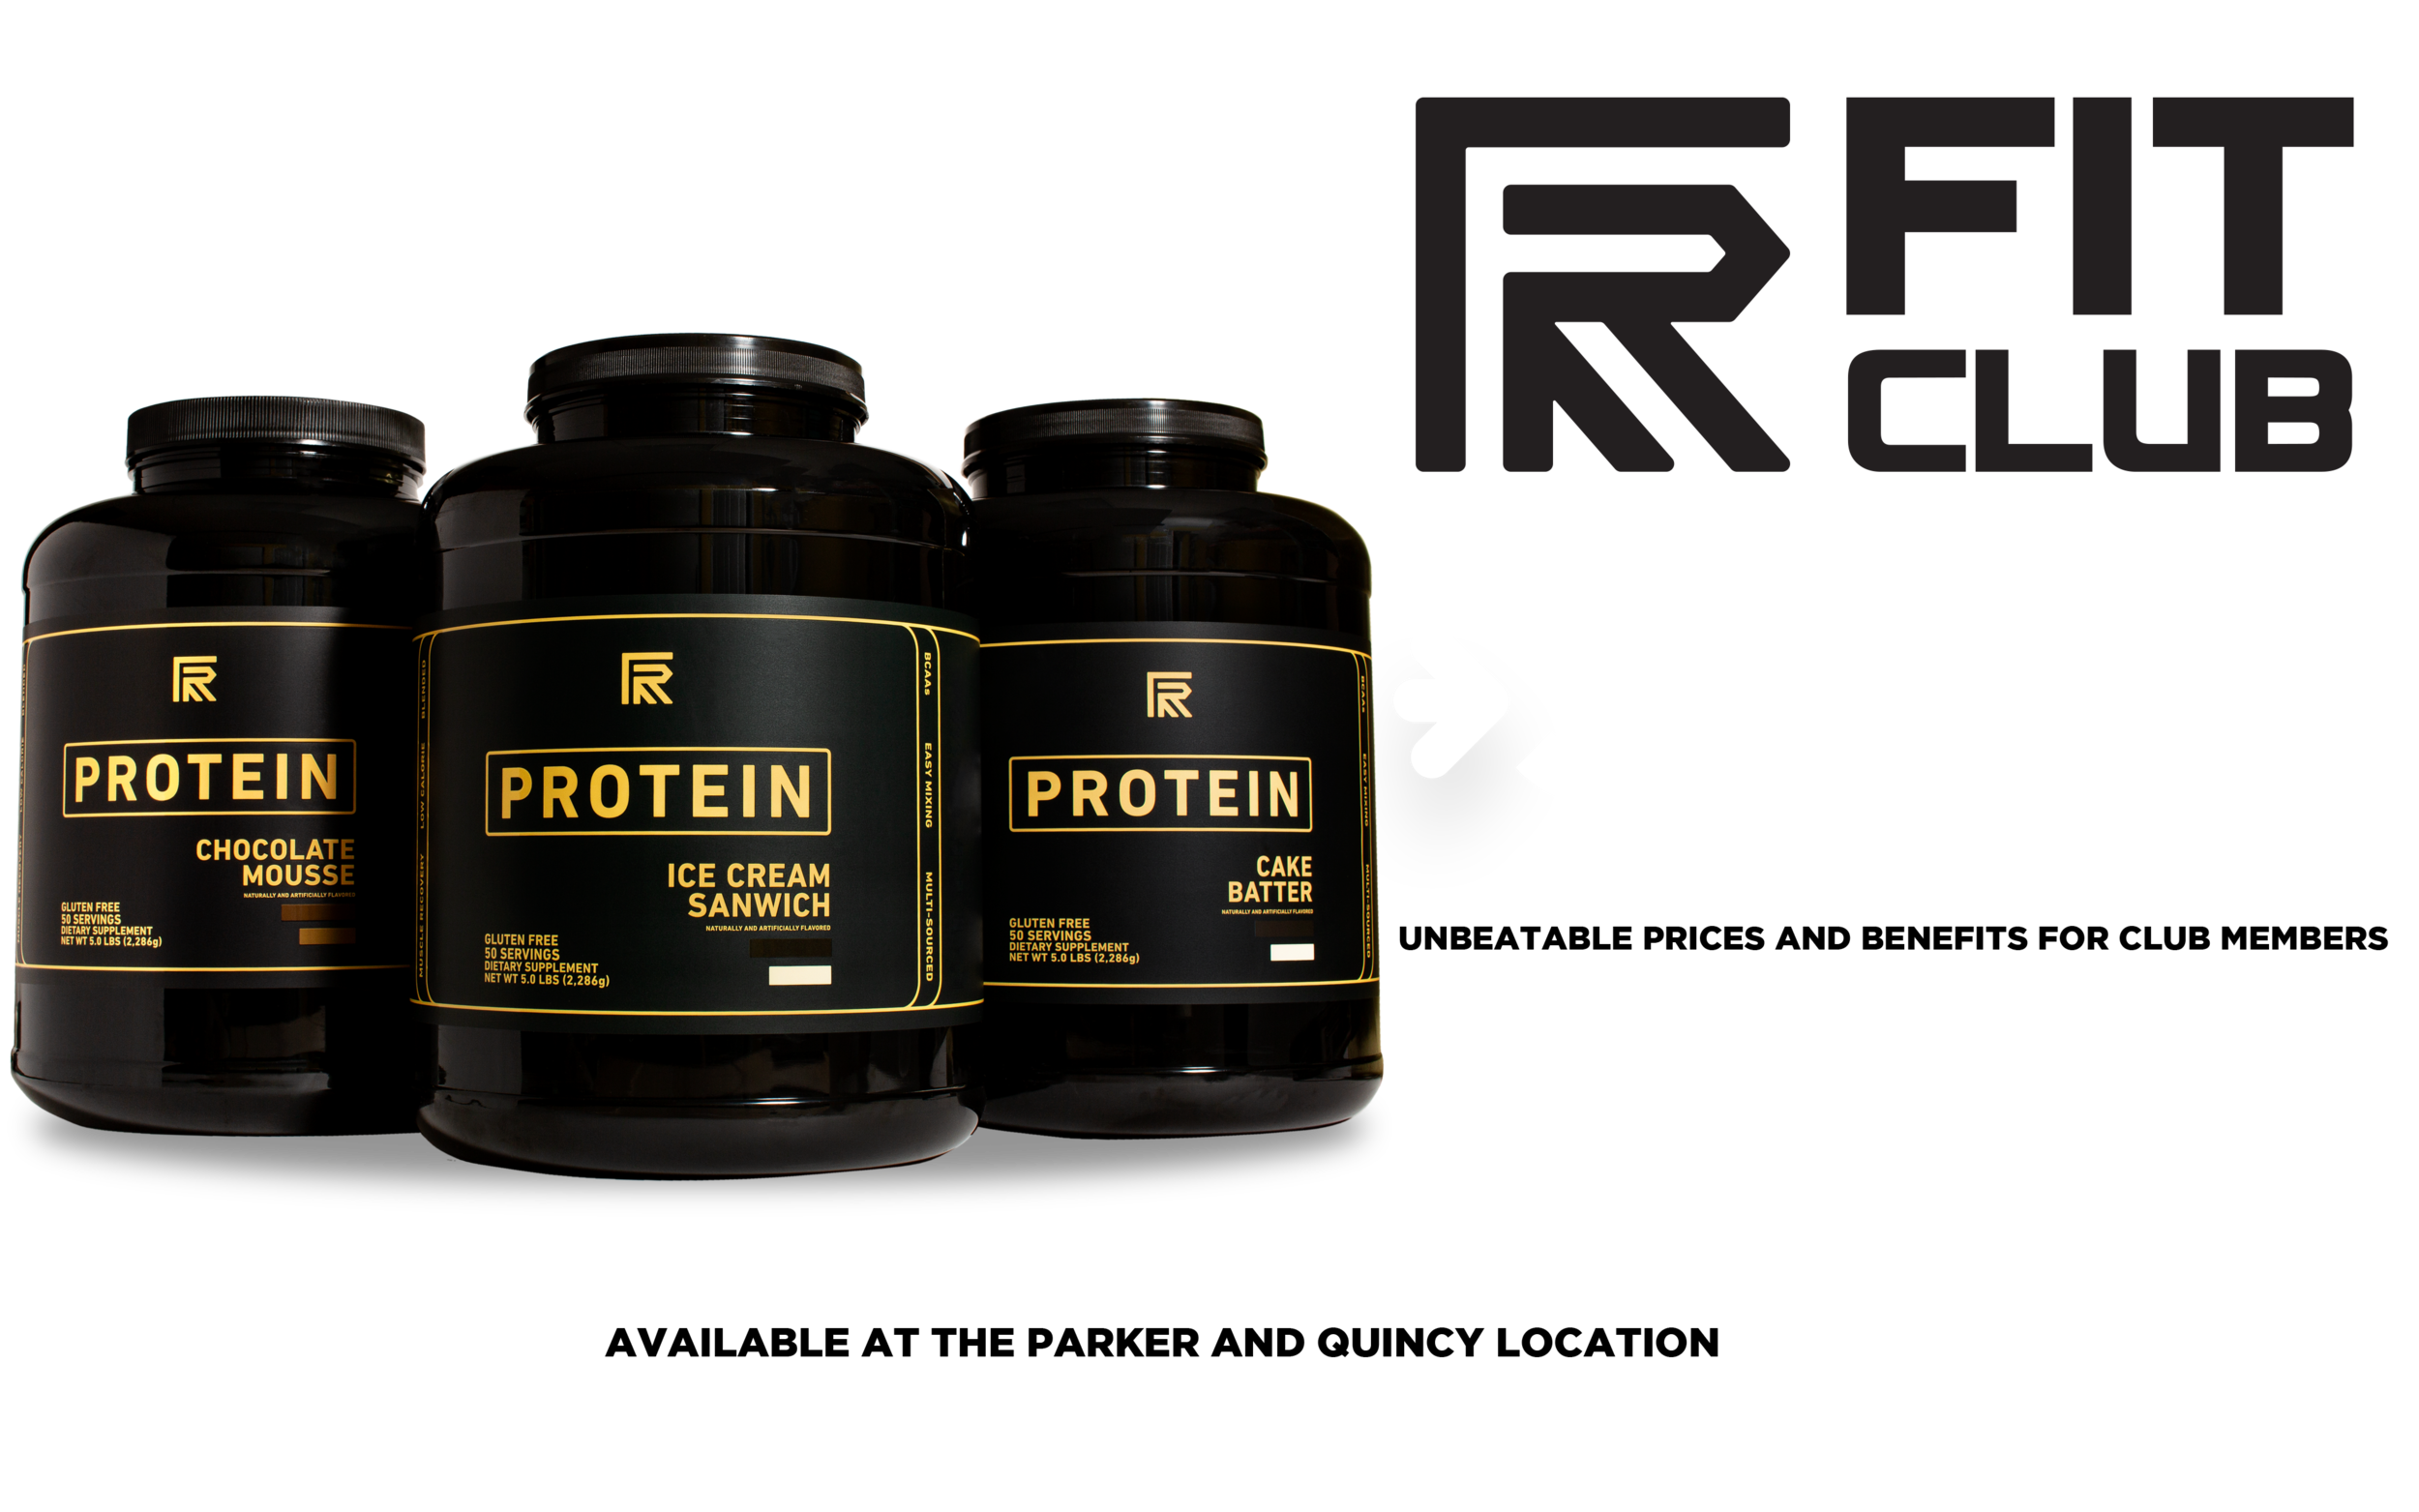 Protein_website.png